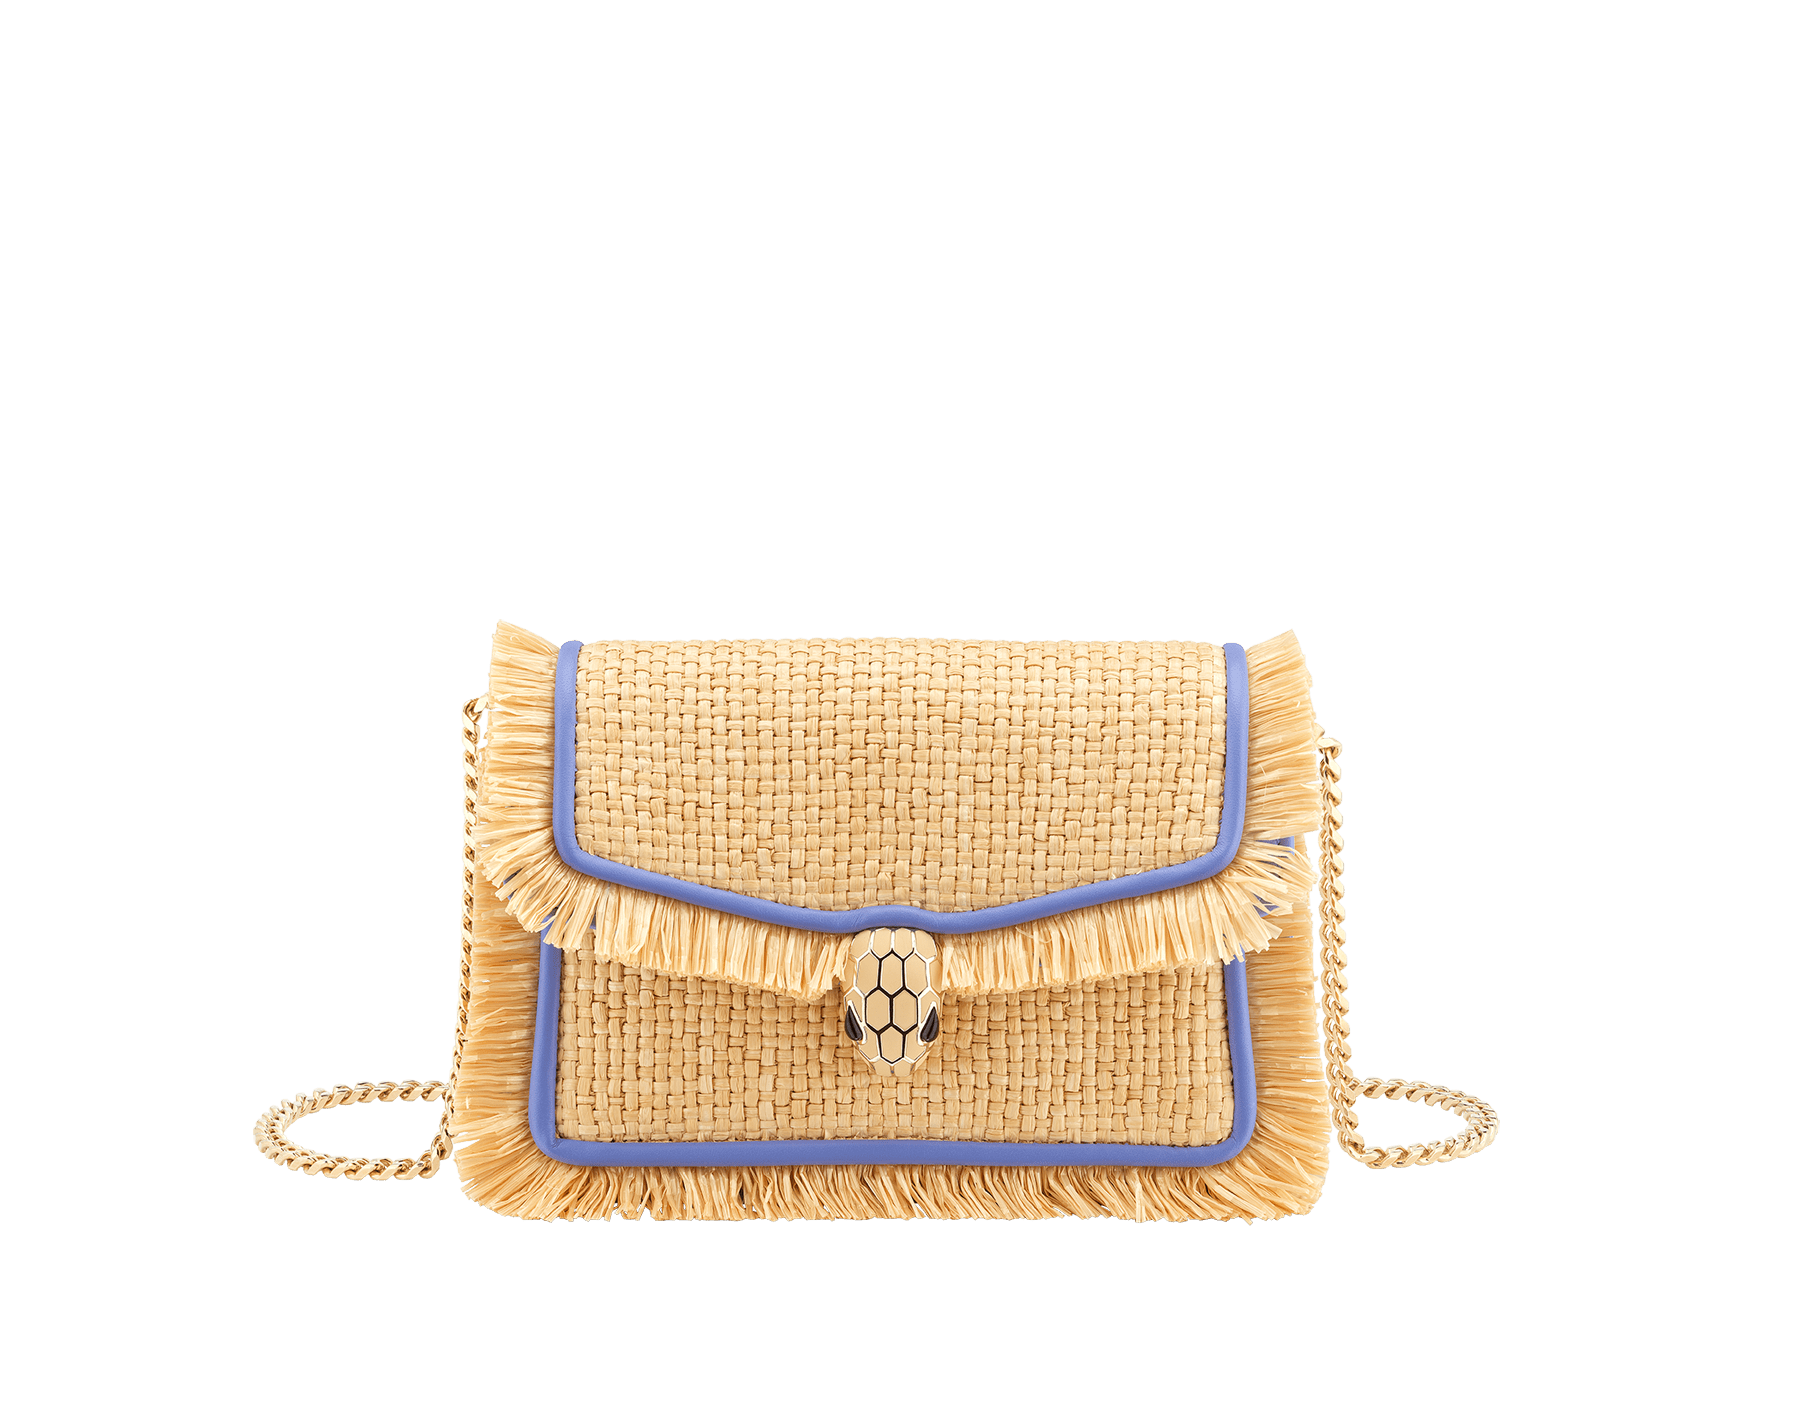 """Serpenti Diamond Blast"" crossbody mini bag in beige raffia body, Lavender Amethyst lilac calfskin frames, finished with beige raffia fringes and Lavender Amethyst lilac nappa leather internal lining. Alluring snakehead closure in light gold-plated brass enhanced with full matte Natural beige enamel and black onyx eyes. 290958 image 1"